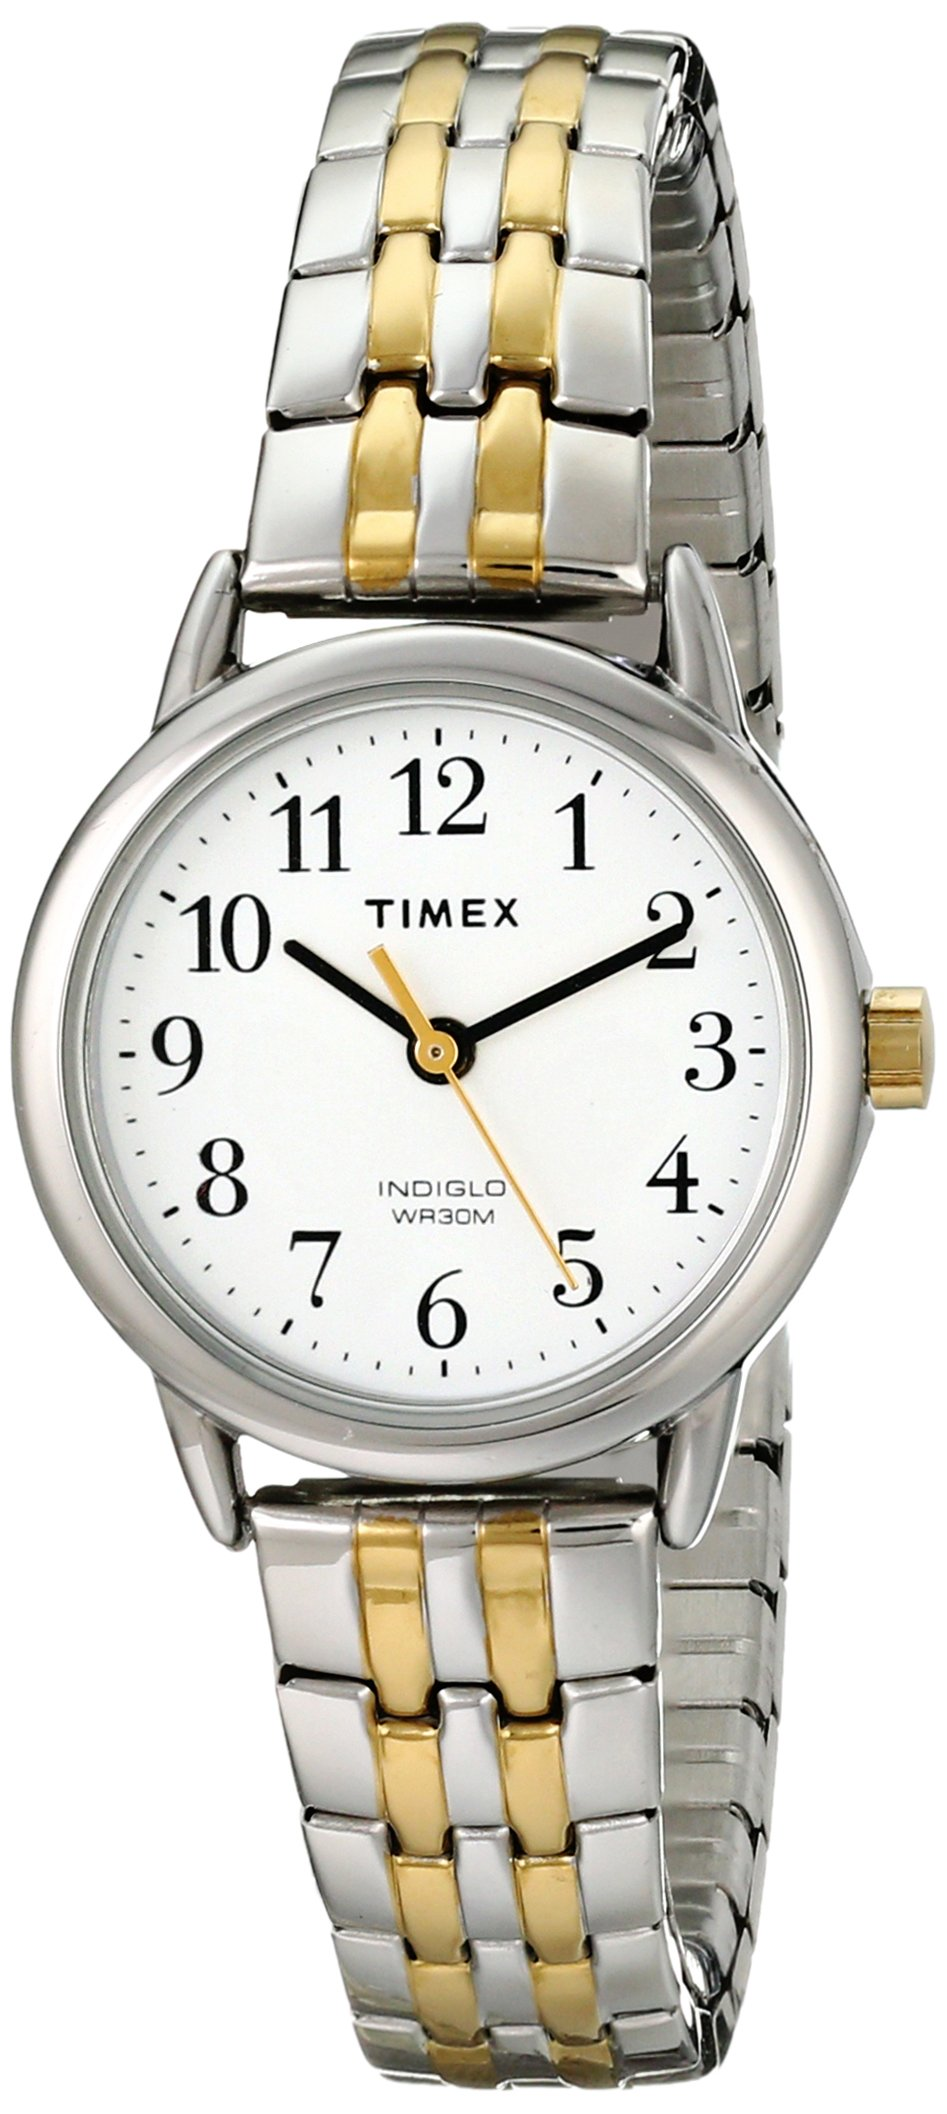 Timex Women's T2P298 Easy Reader Dress Two Tone Stainless Steel Expansion Band Watch by Timex